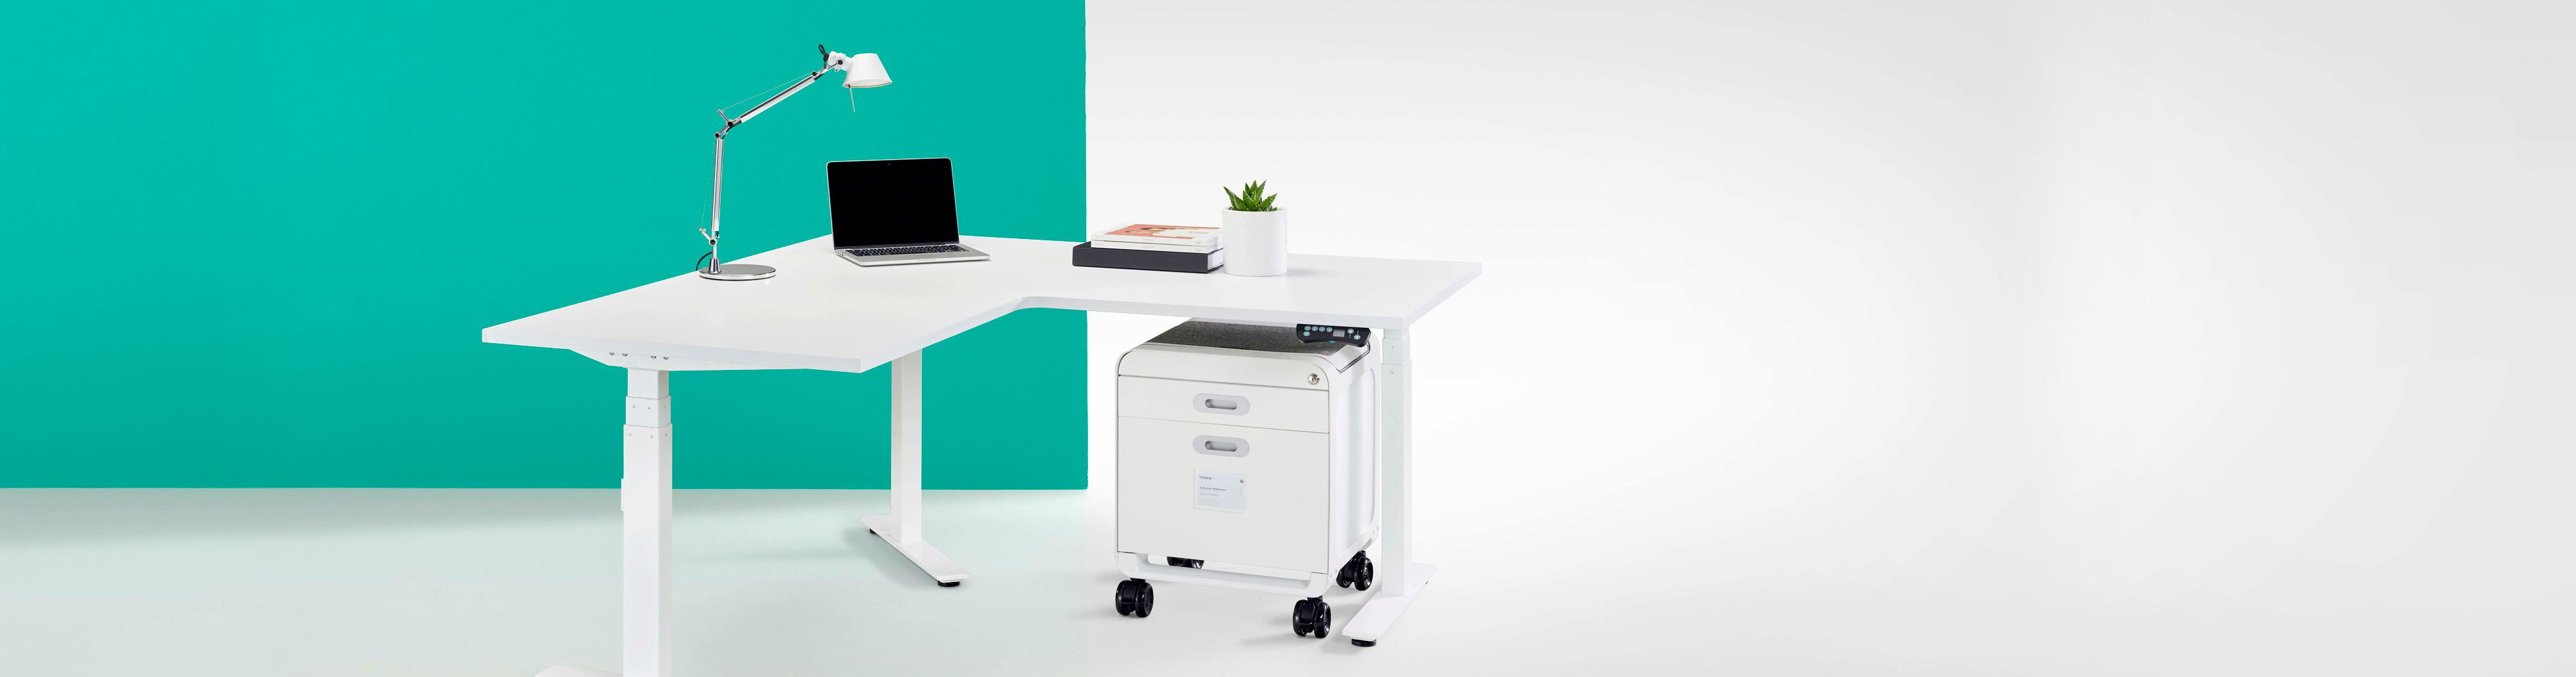 Thinking Works Elevation Electric Workstation 90 Degree Corner Desk